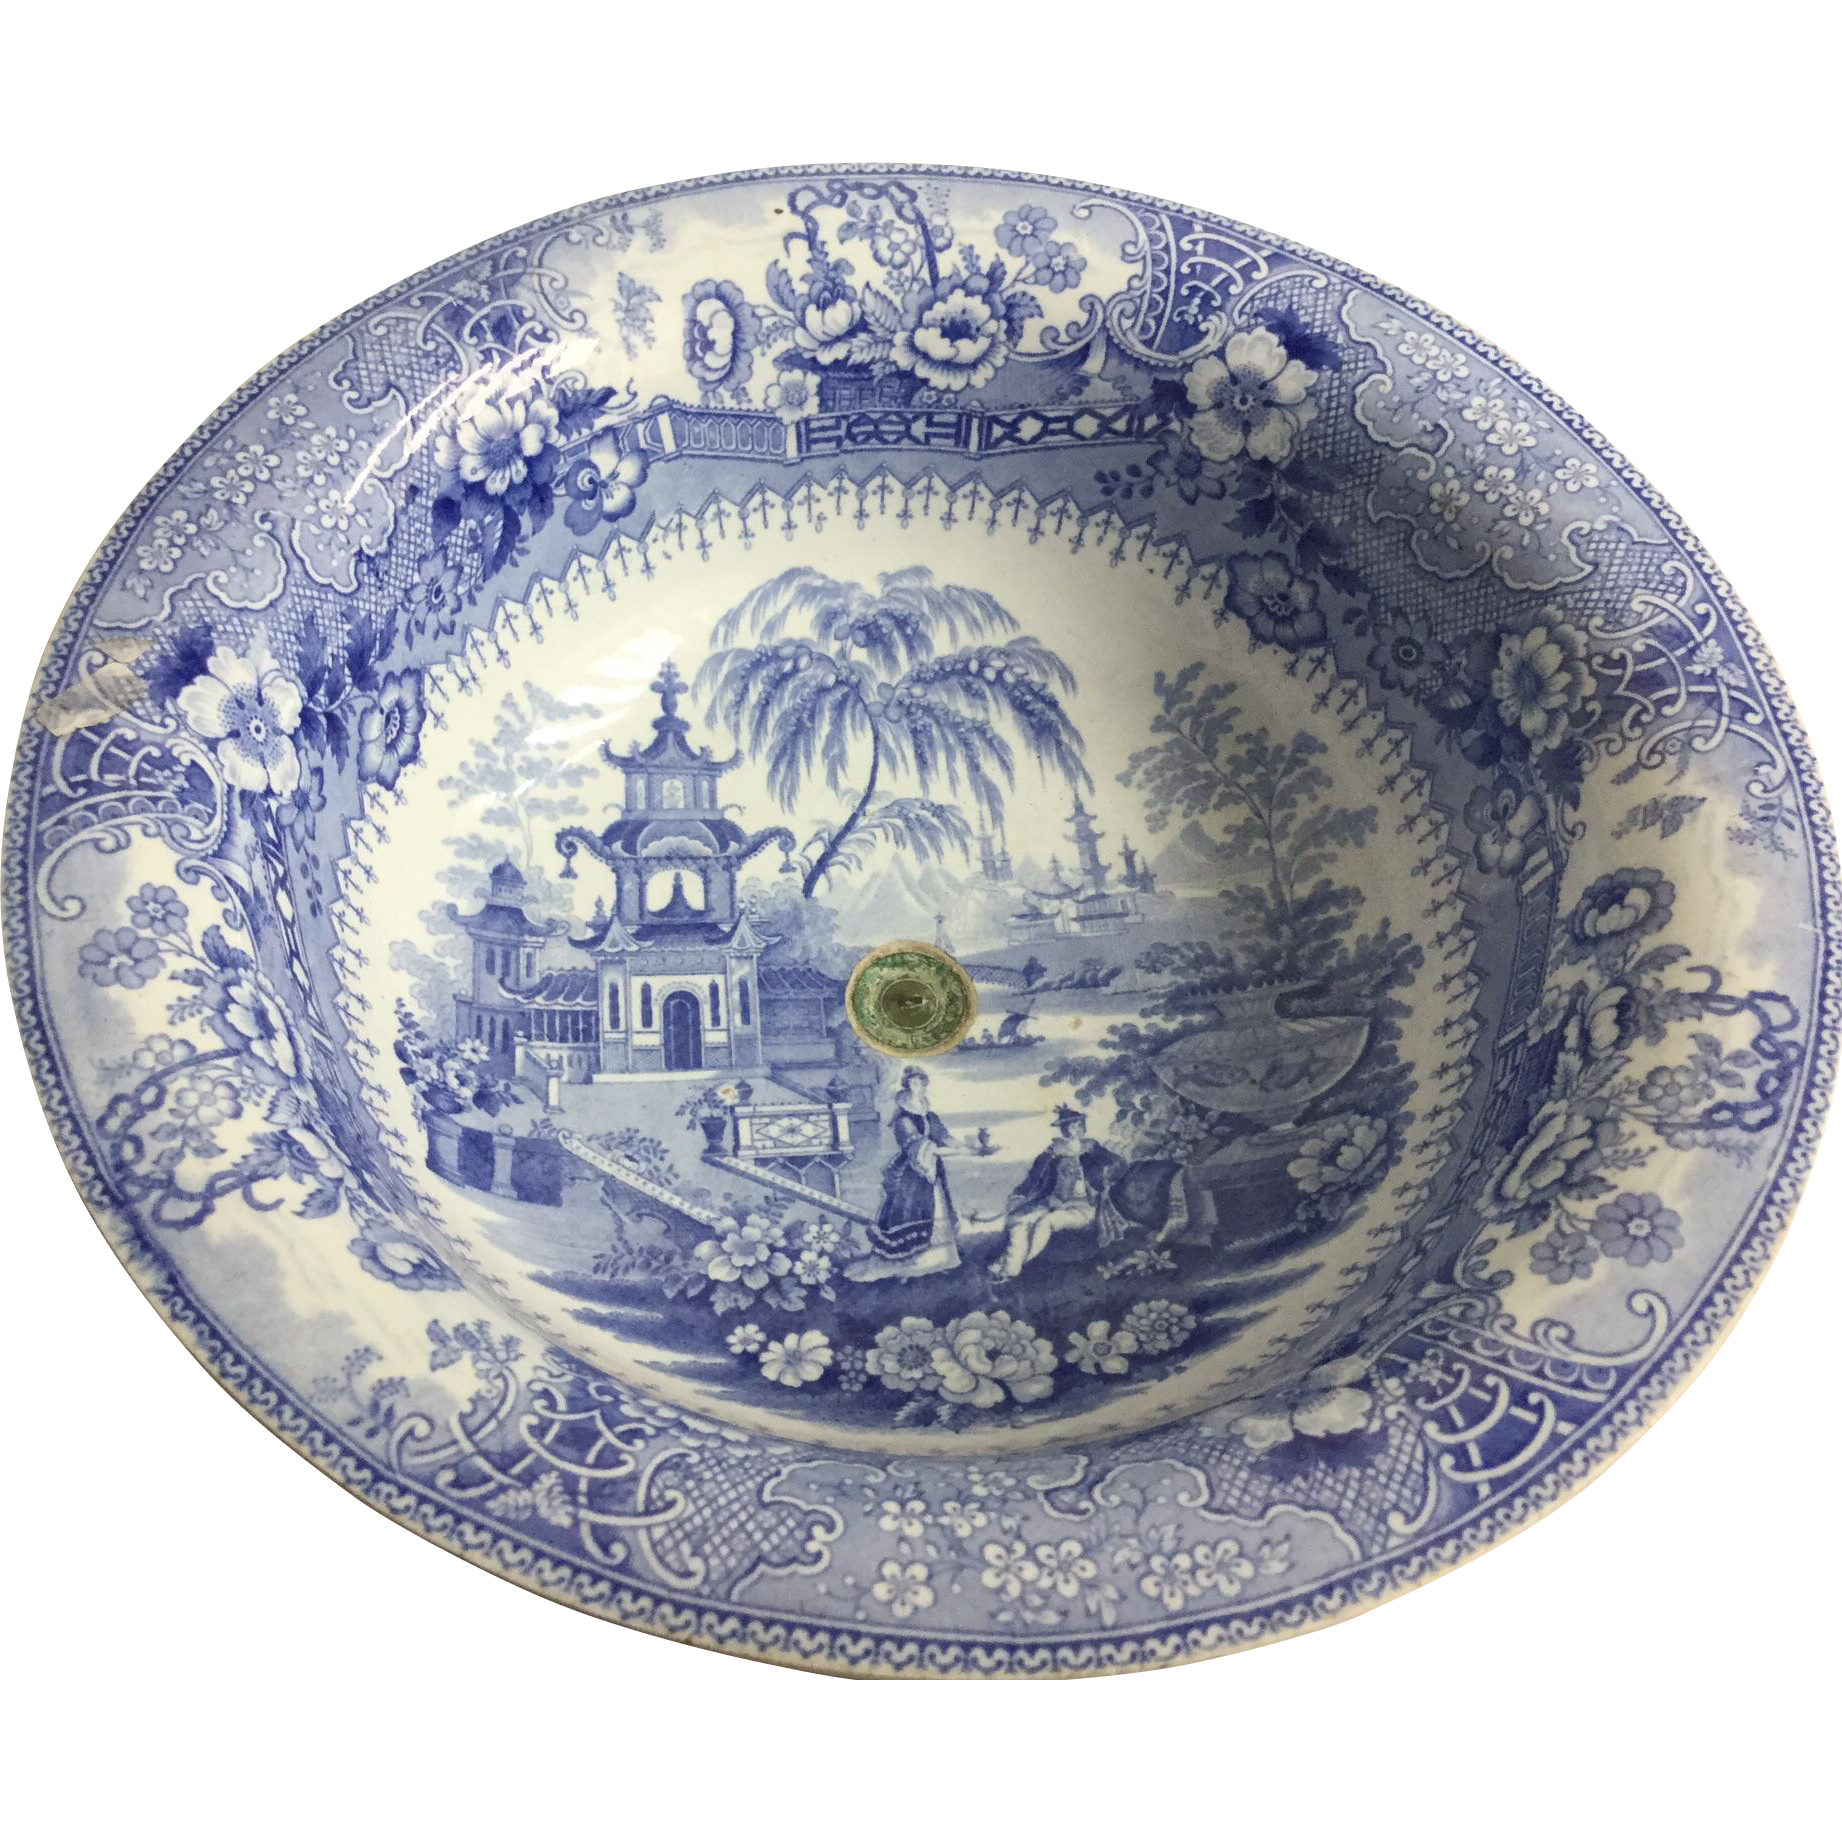 Transfer Ware Medium Blue Sink Or Bowl From Mbcantiques On